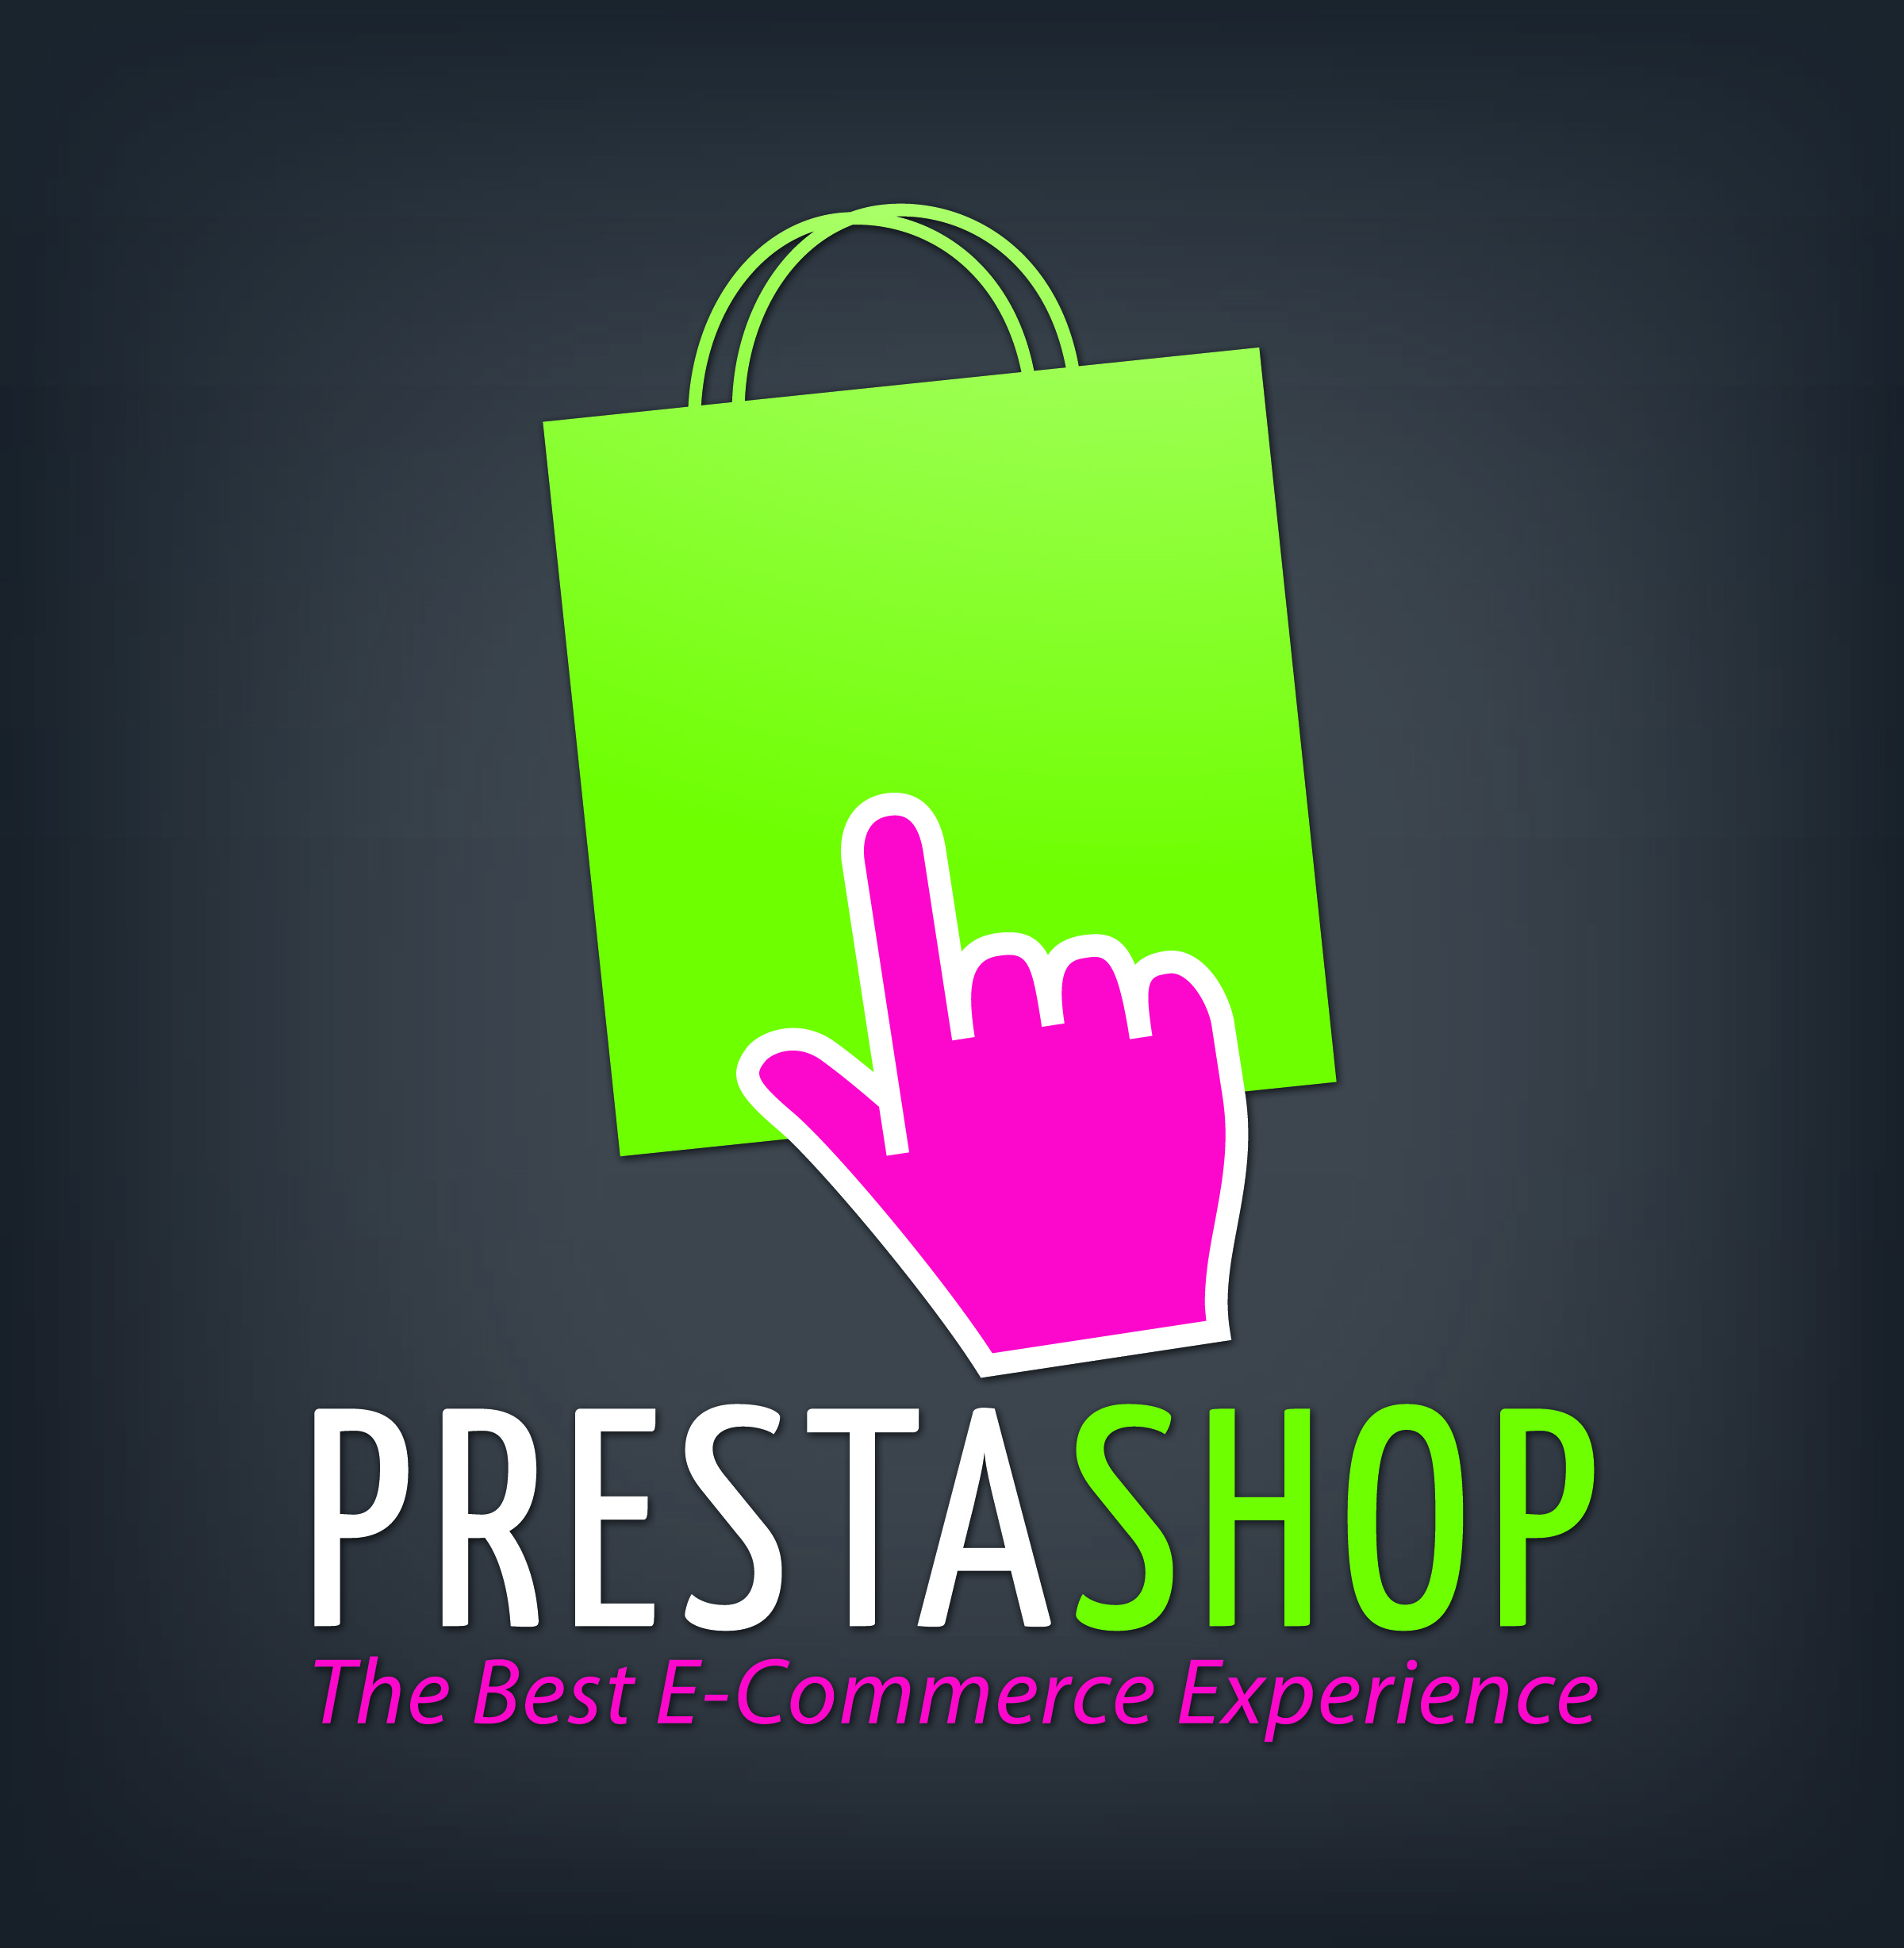 You Should Know About The Premium Prestashop Templates